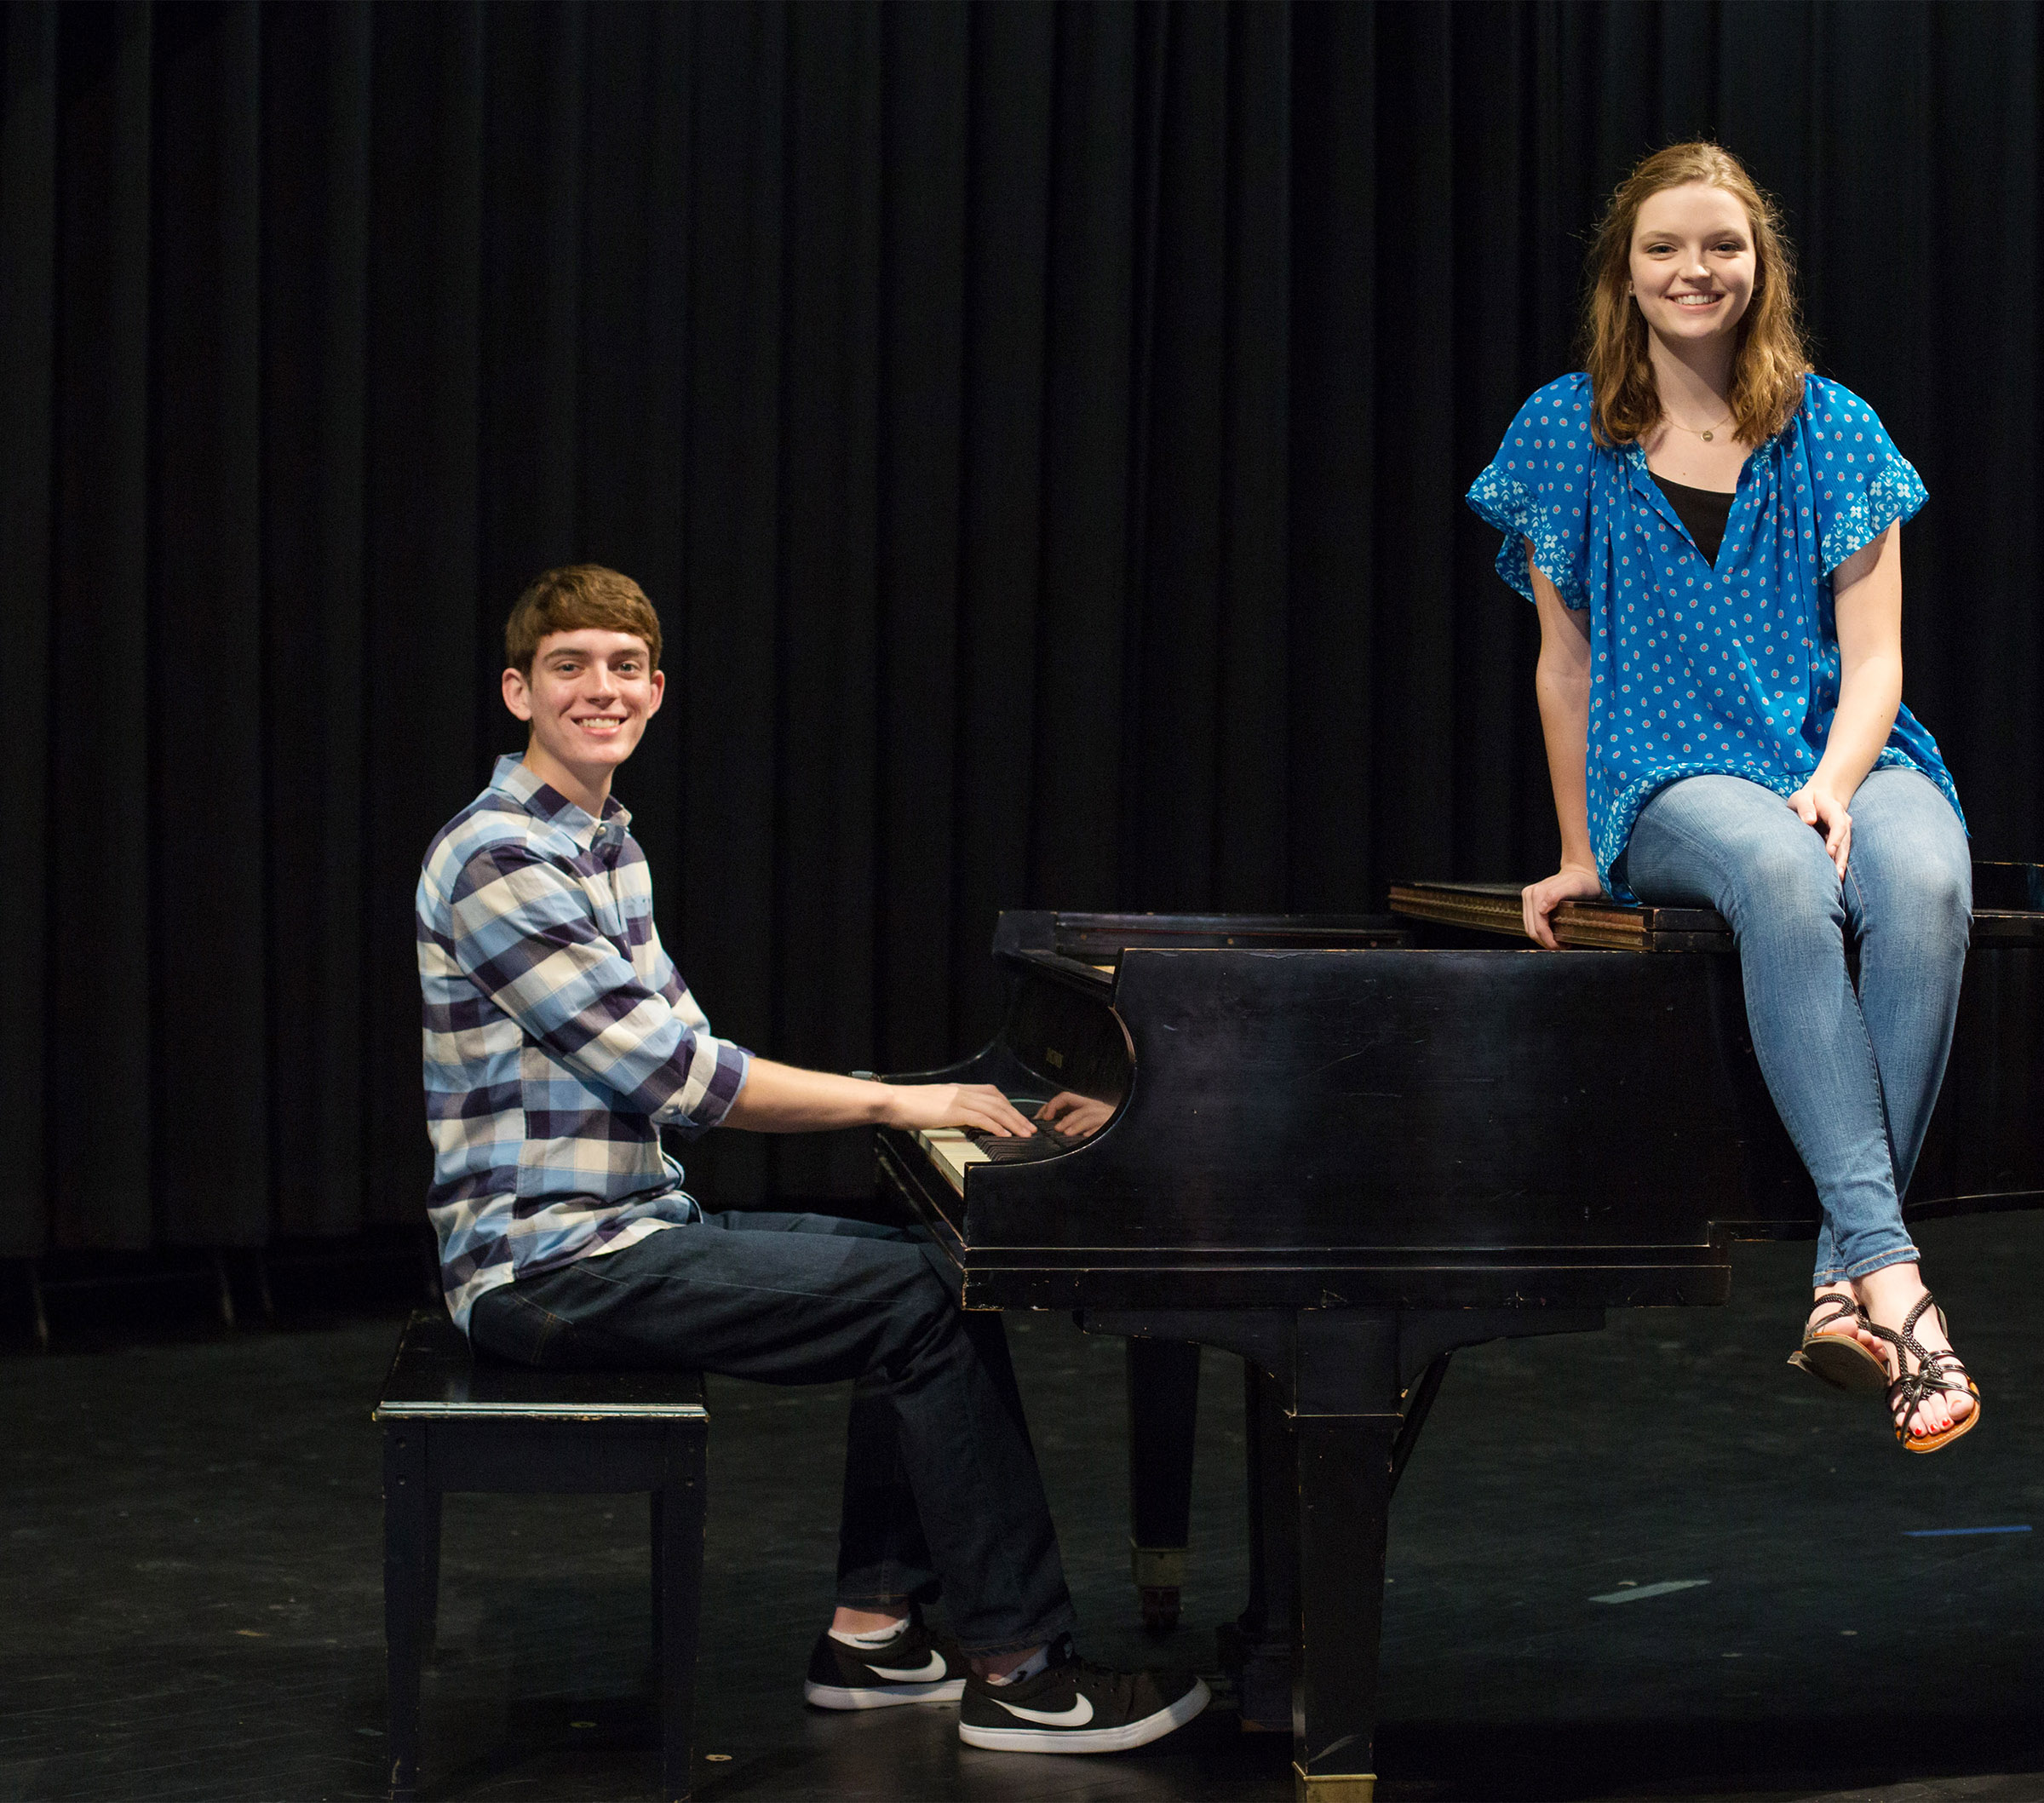 Blair Lamb and Murphy Lamb were voted Most Talented.